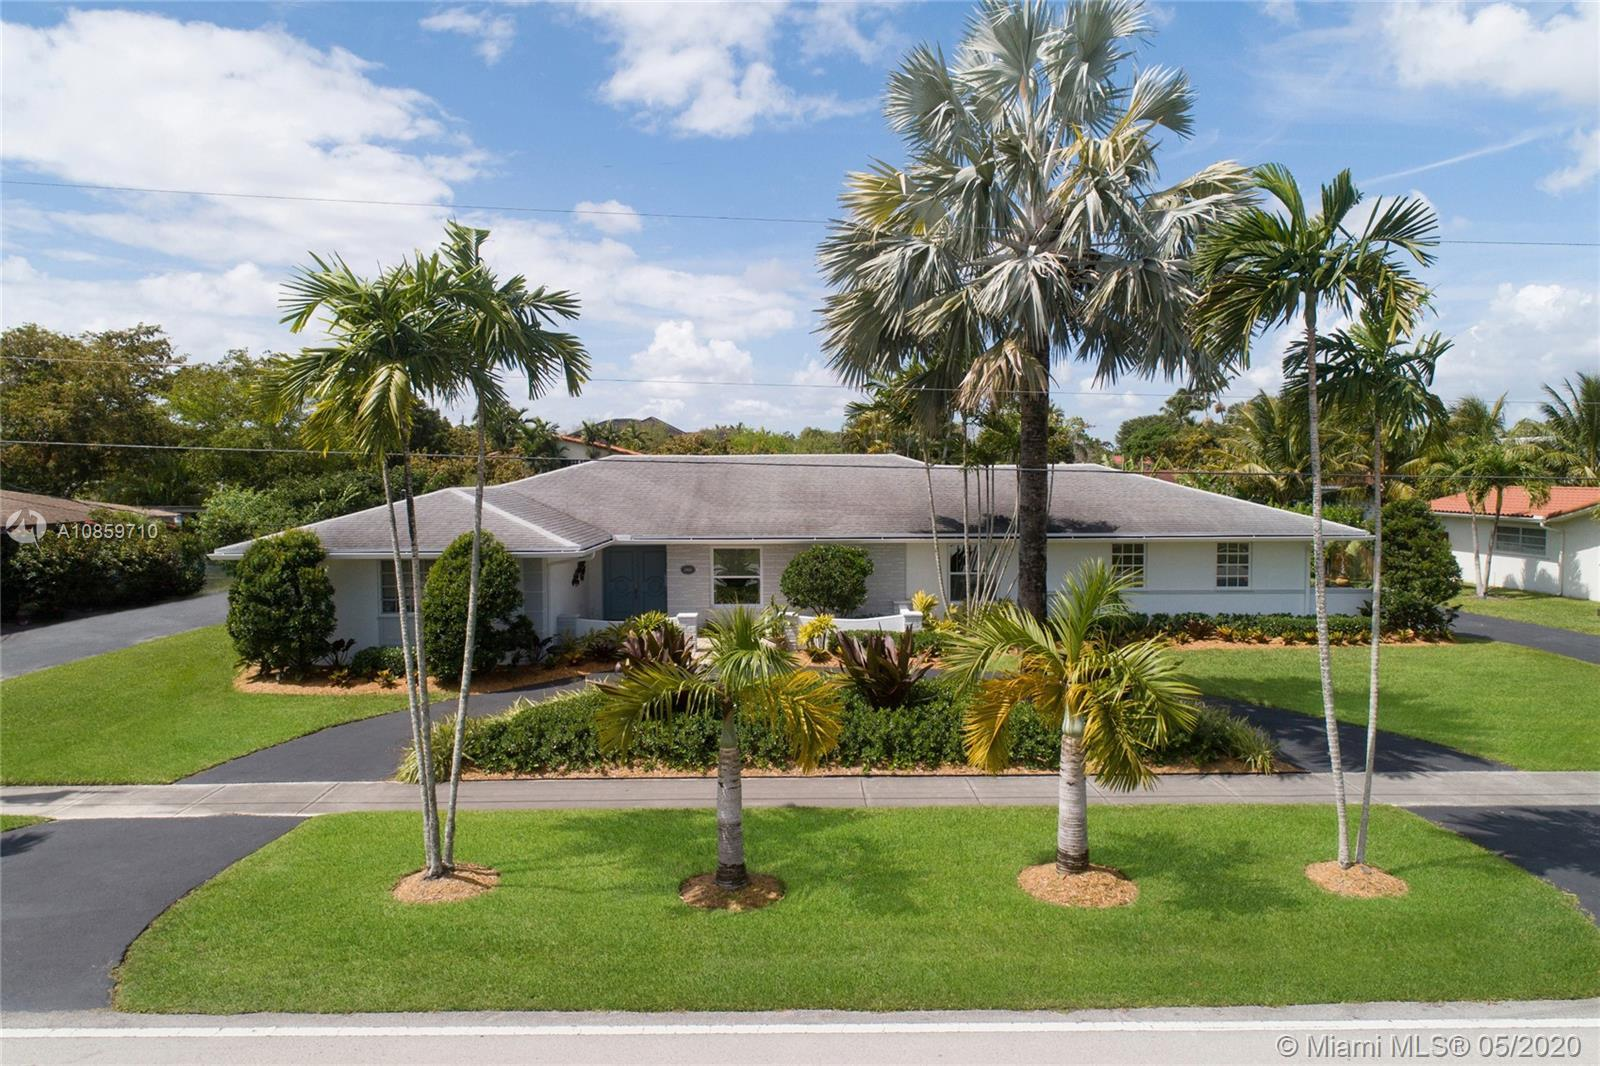 Pinecrest dream home on a peaceful canal. Beautifully renovated by residential designer Cyndi Navarr